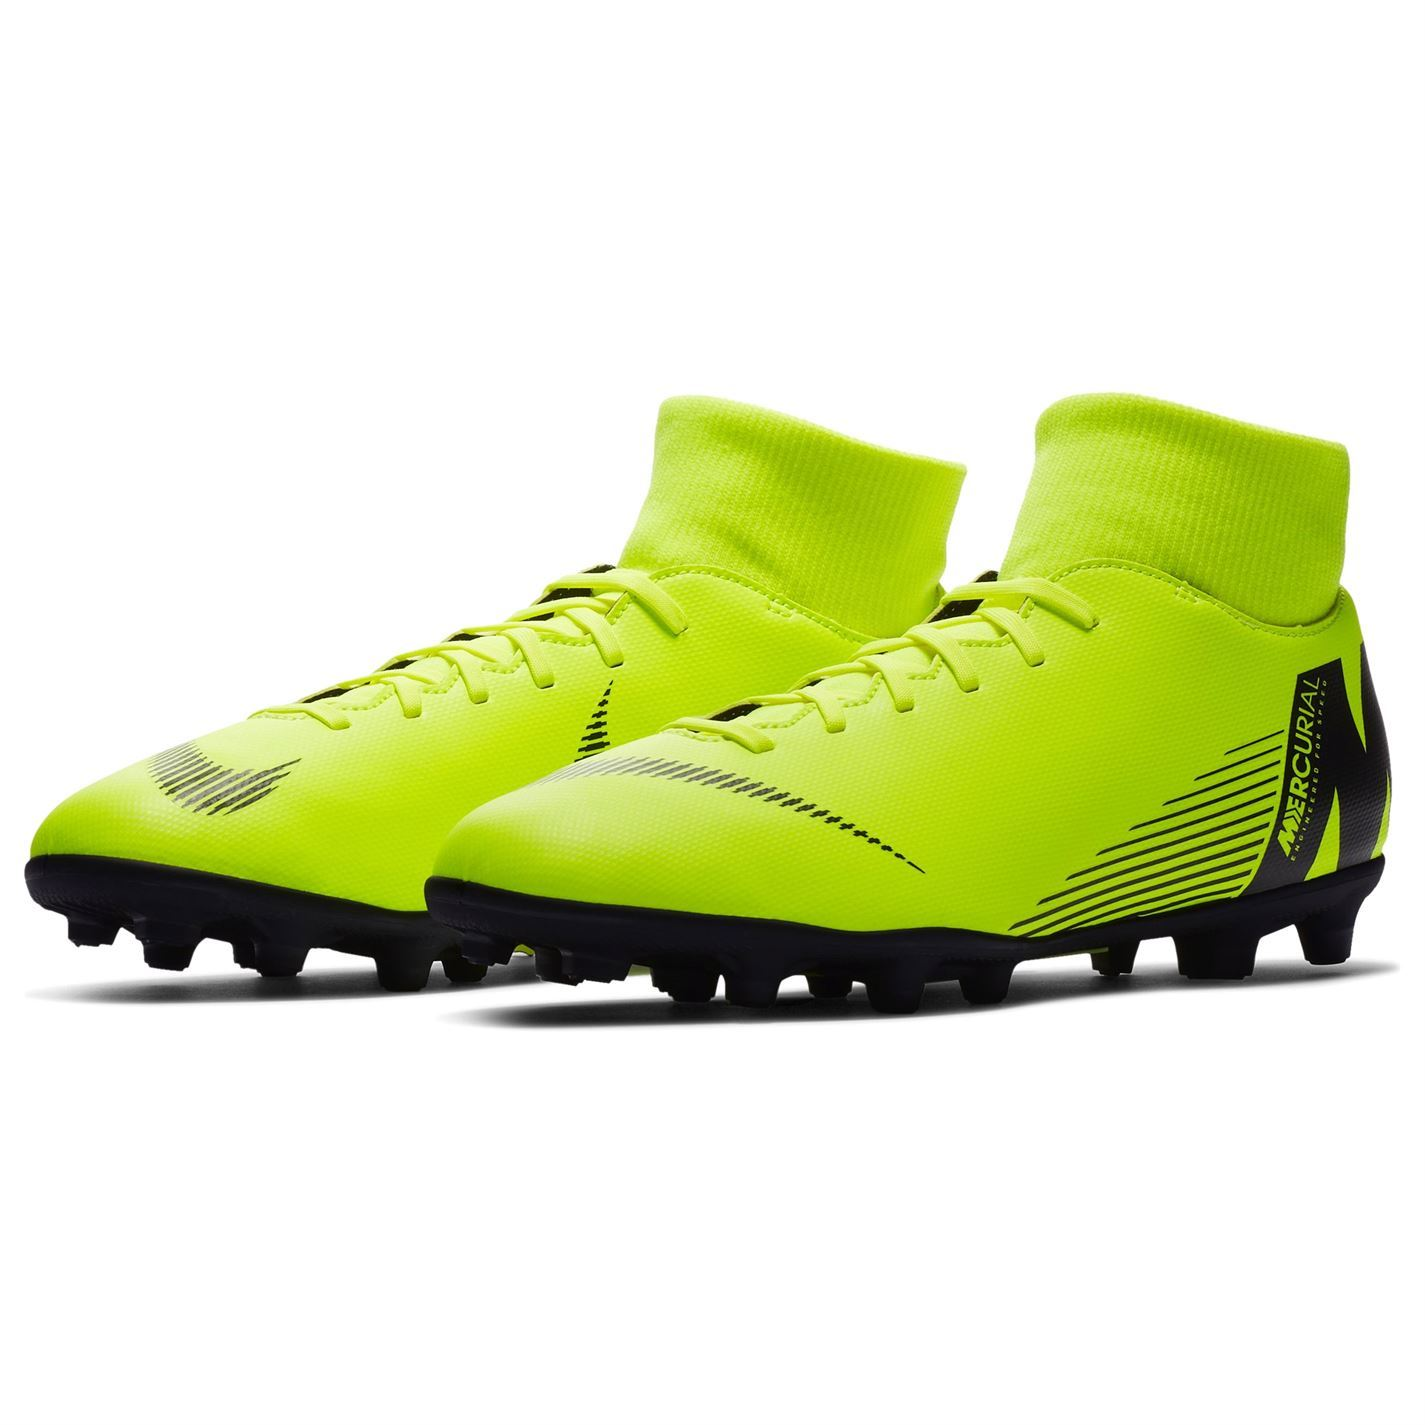 check out c34d3 8f490 Nike-Mercurial-Superfly-Club-DF-FG-Firm-Ground-